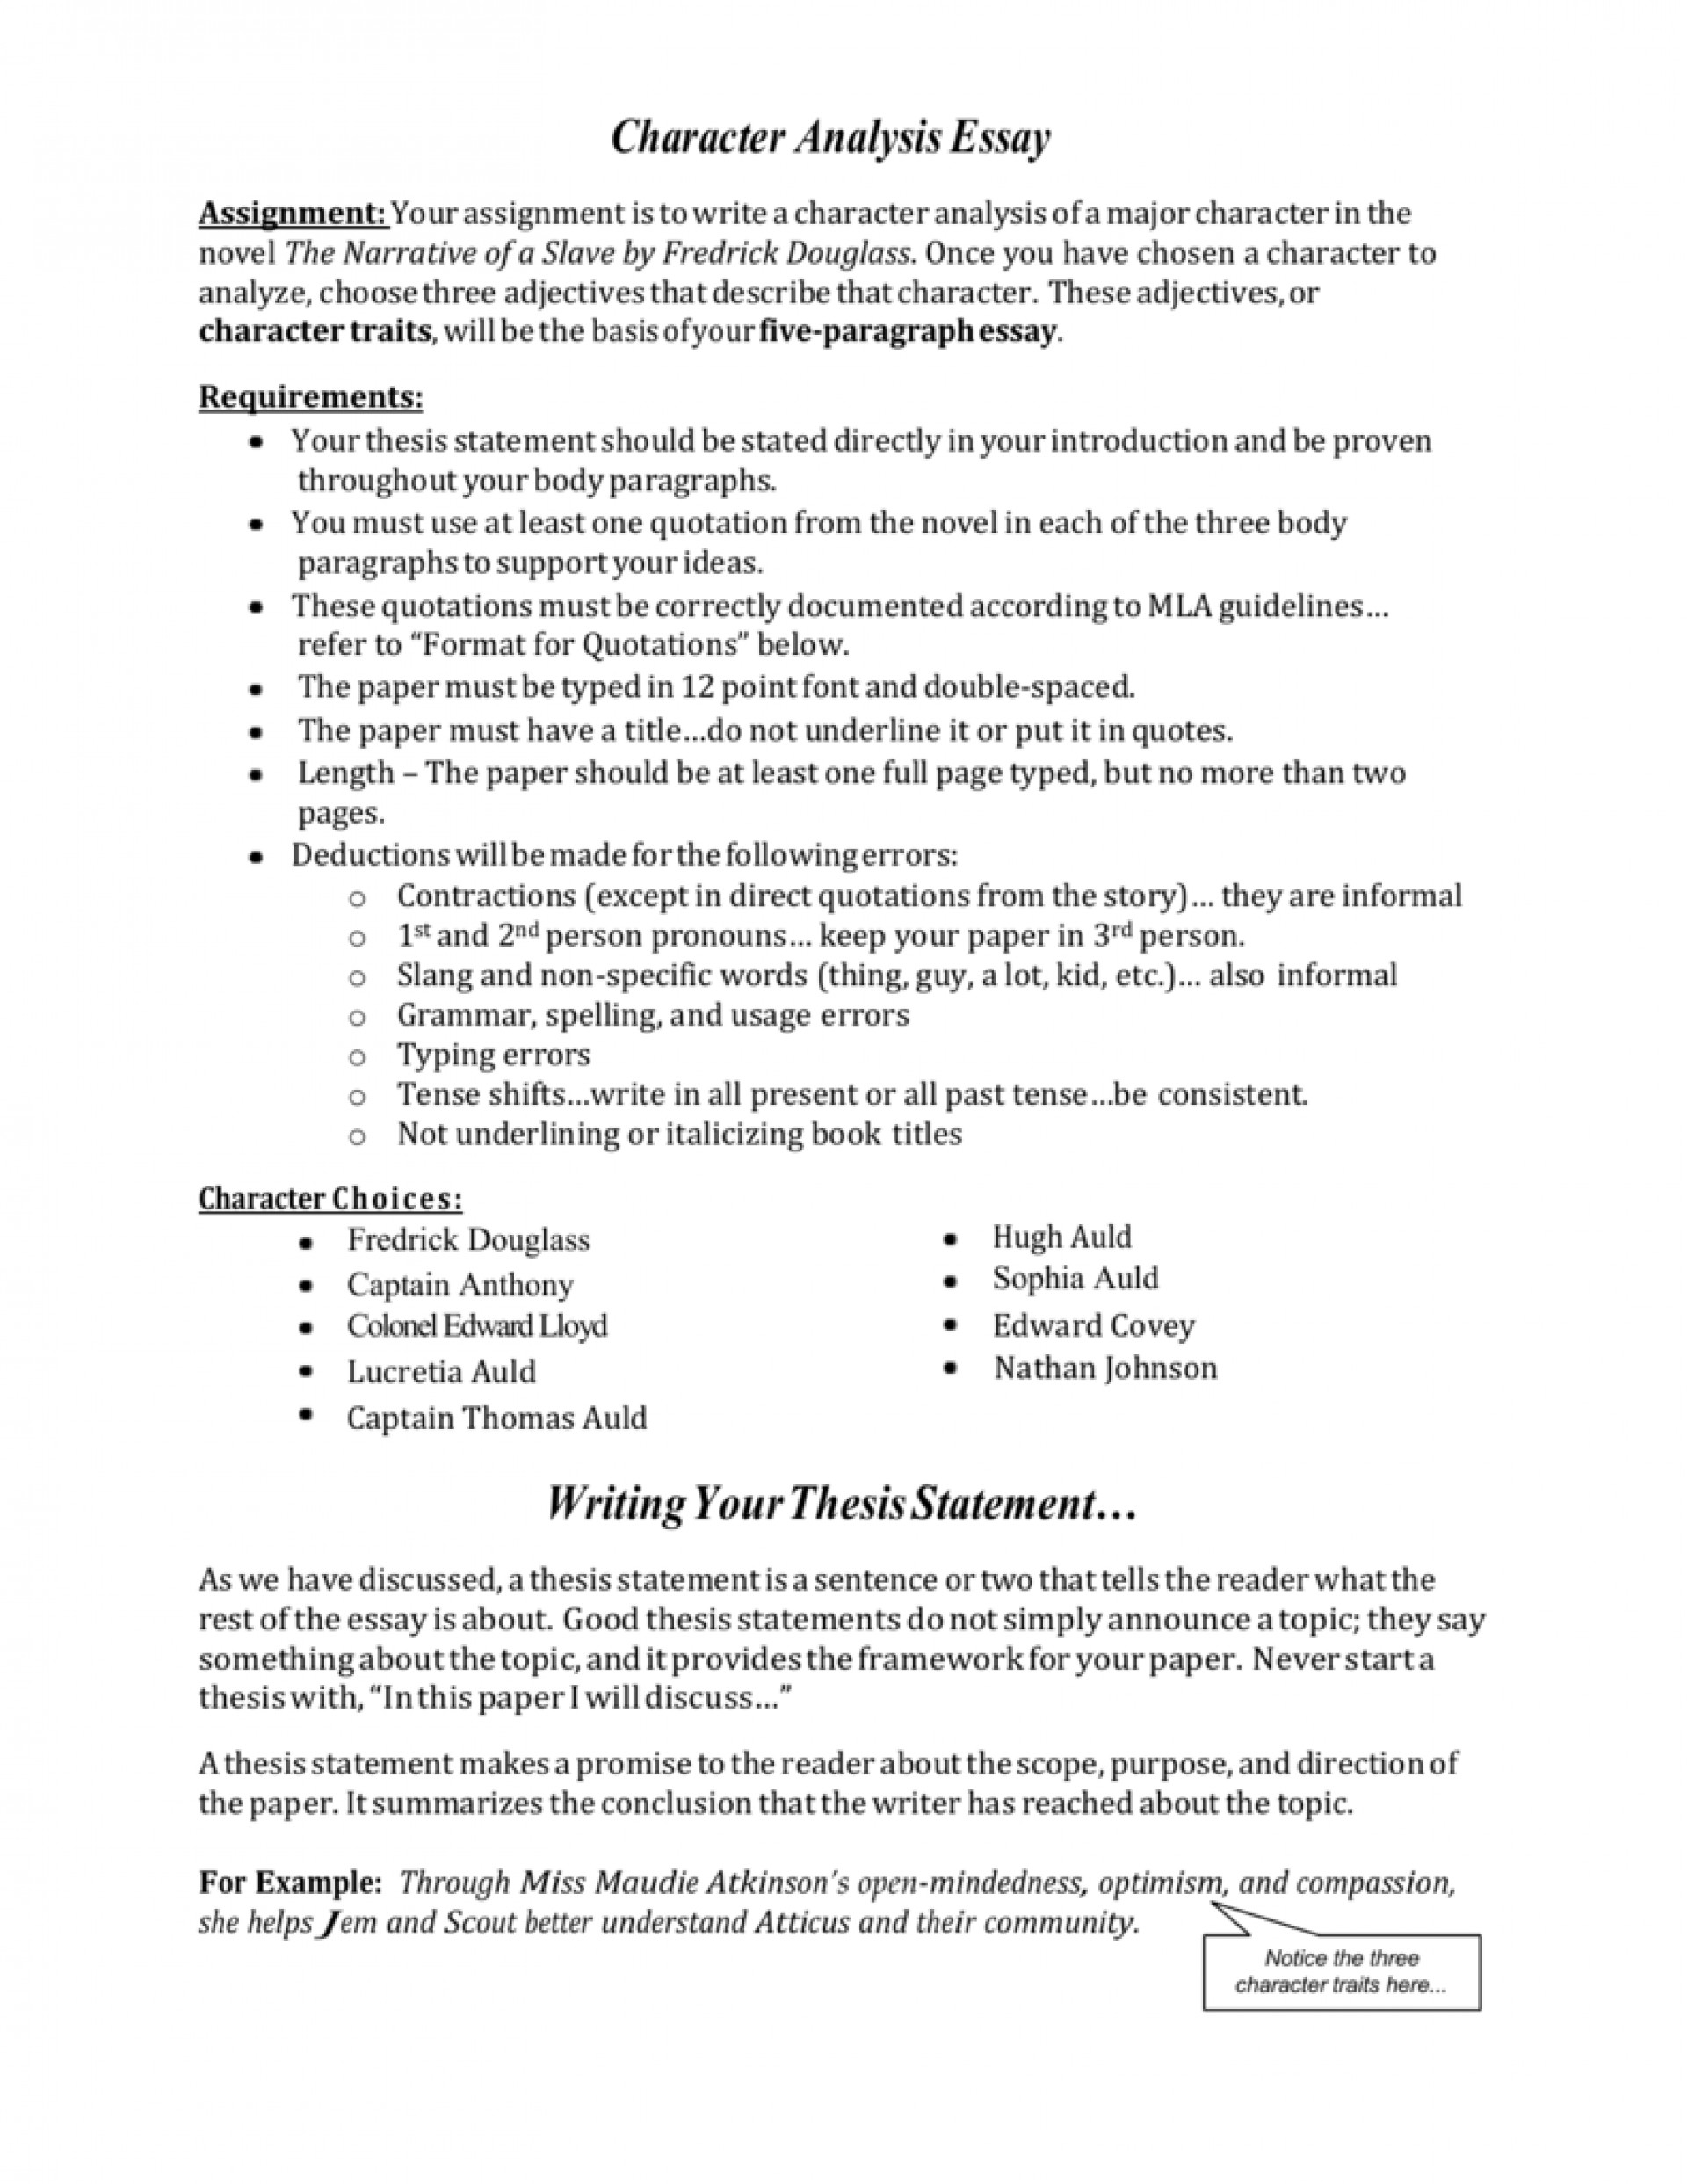 002 Character Essay 009629727 1 Wondrous Introduction Lord Of The Flies Plans Sketch Rubric 1920